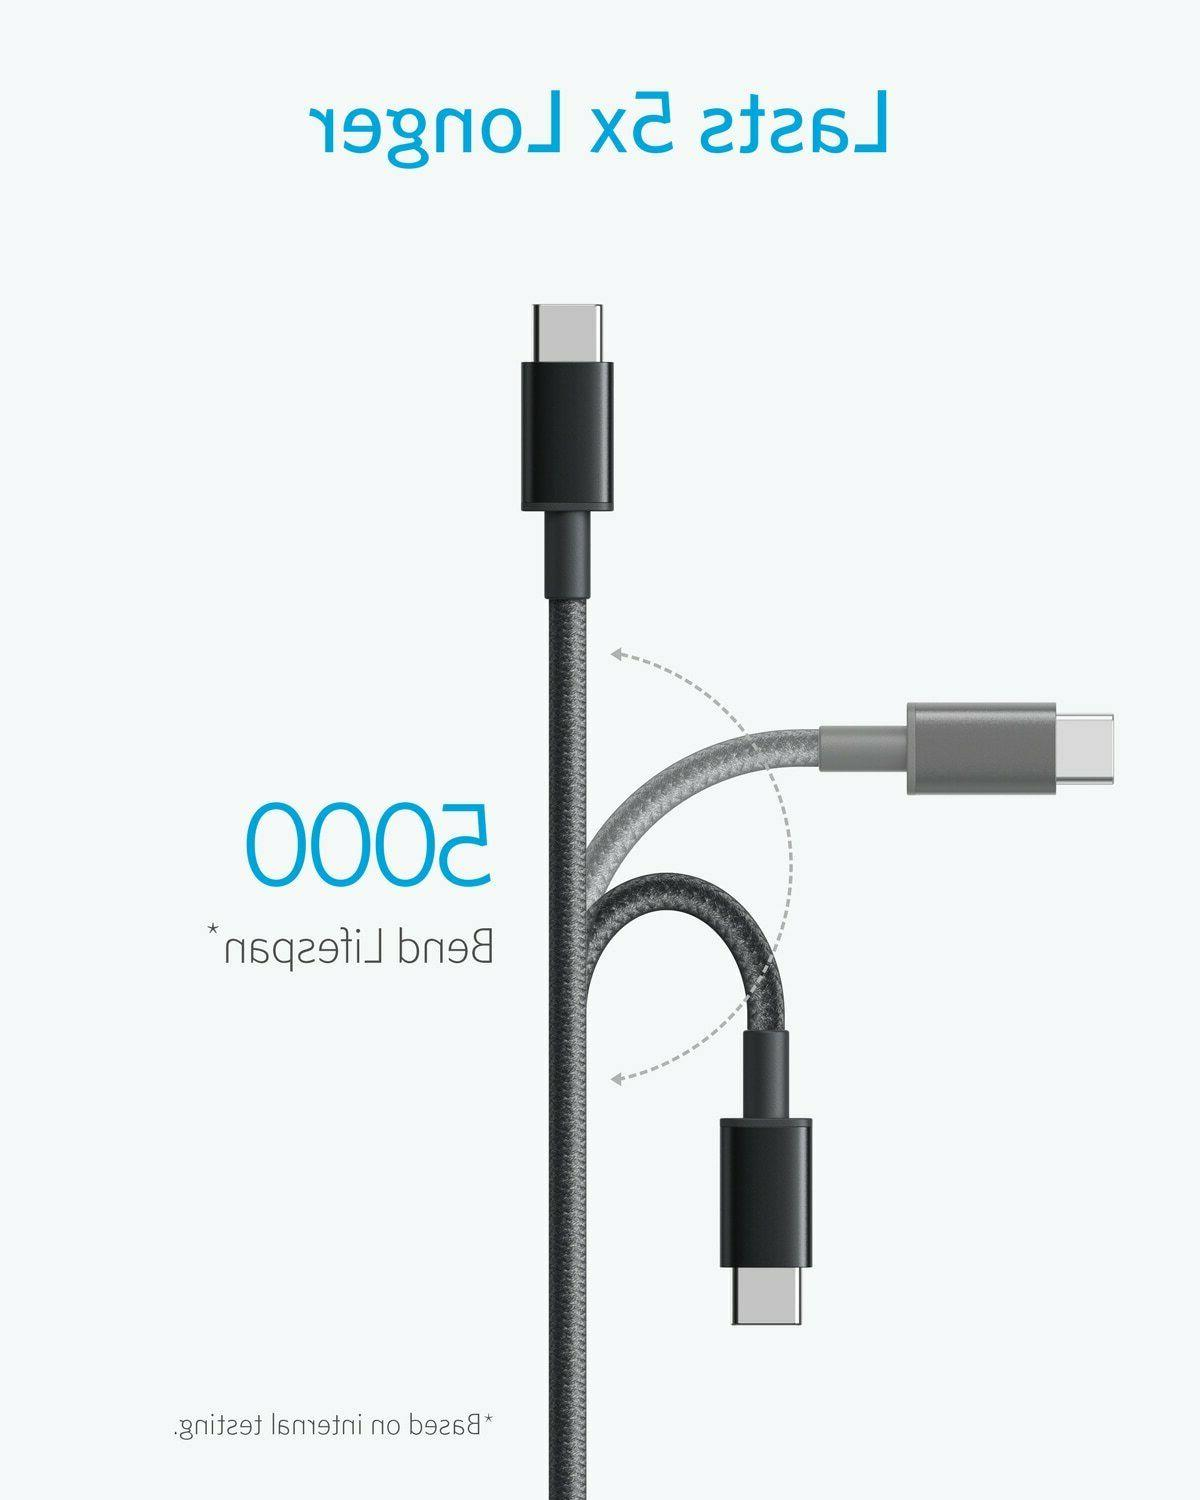 Anker USB Type C Cable 2x 6Ft USB-C USB Charging for